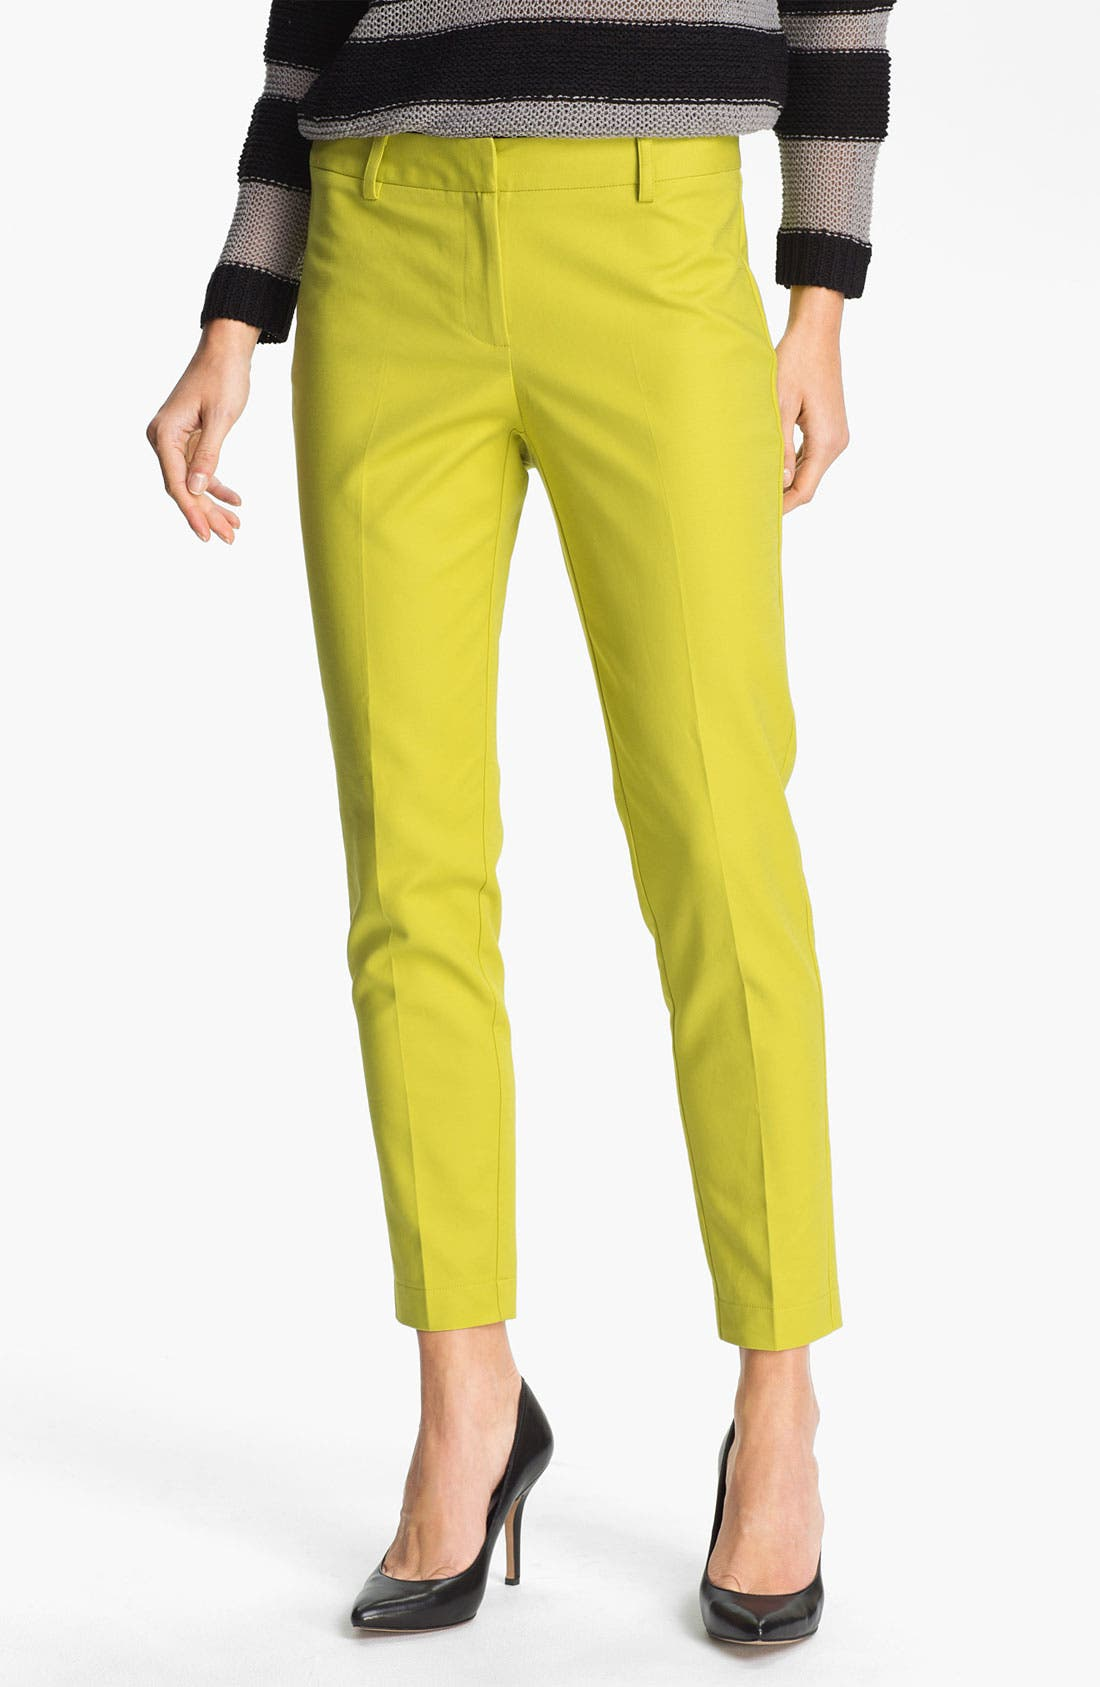 Main Image - Kenneth Cole New York 'Becky' Skinny Ankle Pants